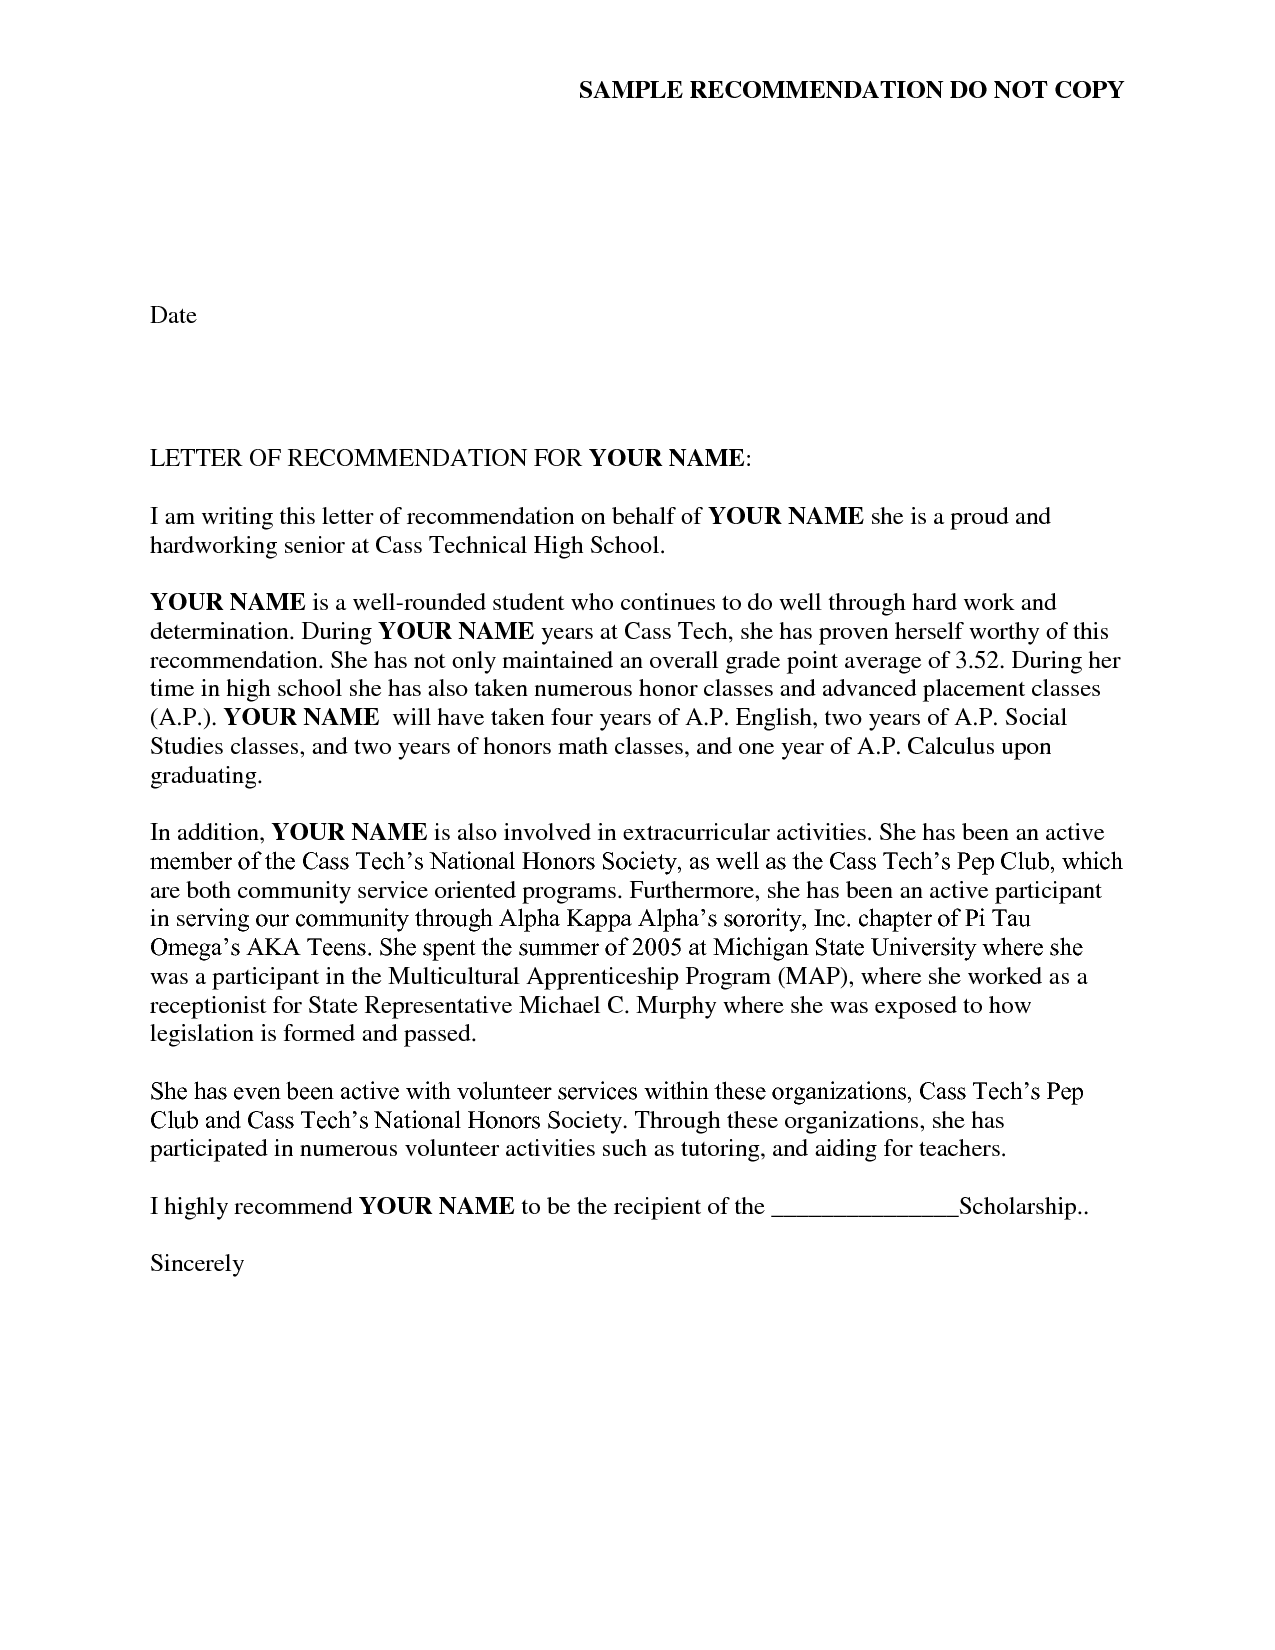 Reference letter of recommendation sample sample alpha kappa reference letter of recommendation sample sample alpha kappa alpha recommendation letter thecheapjerseys Image collections